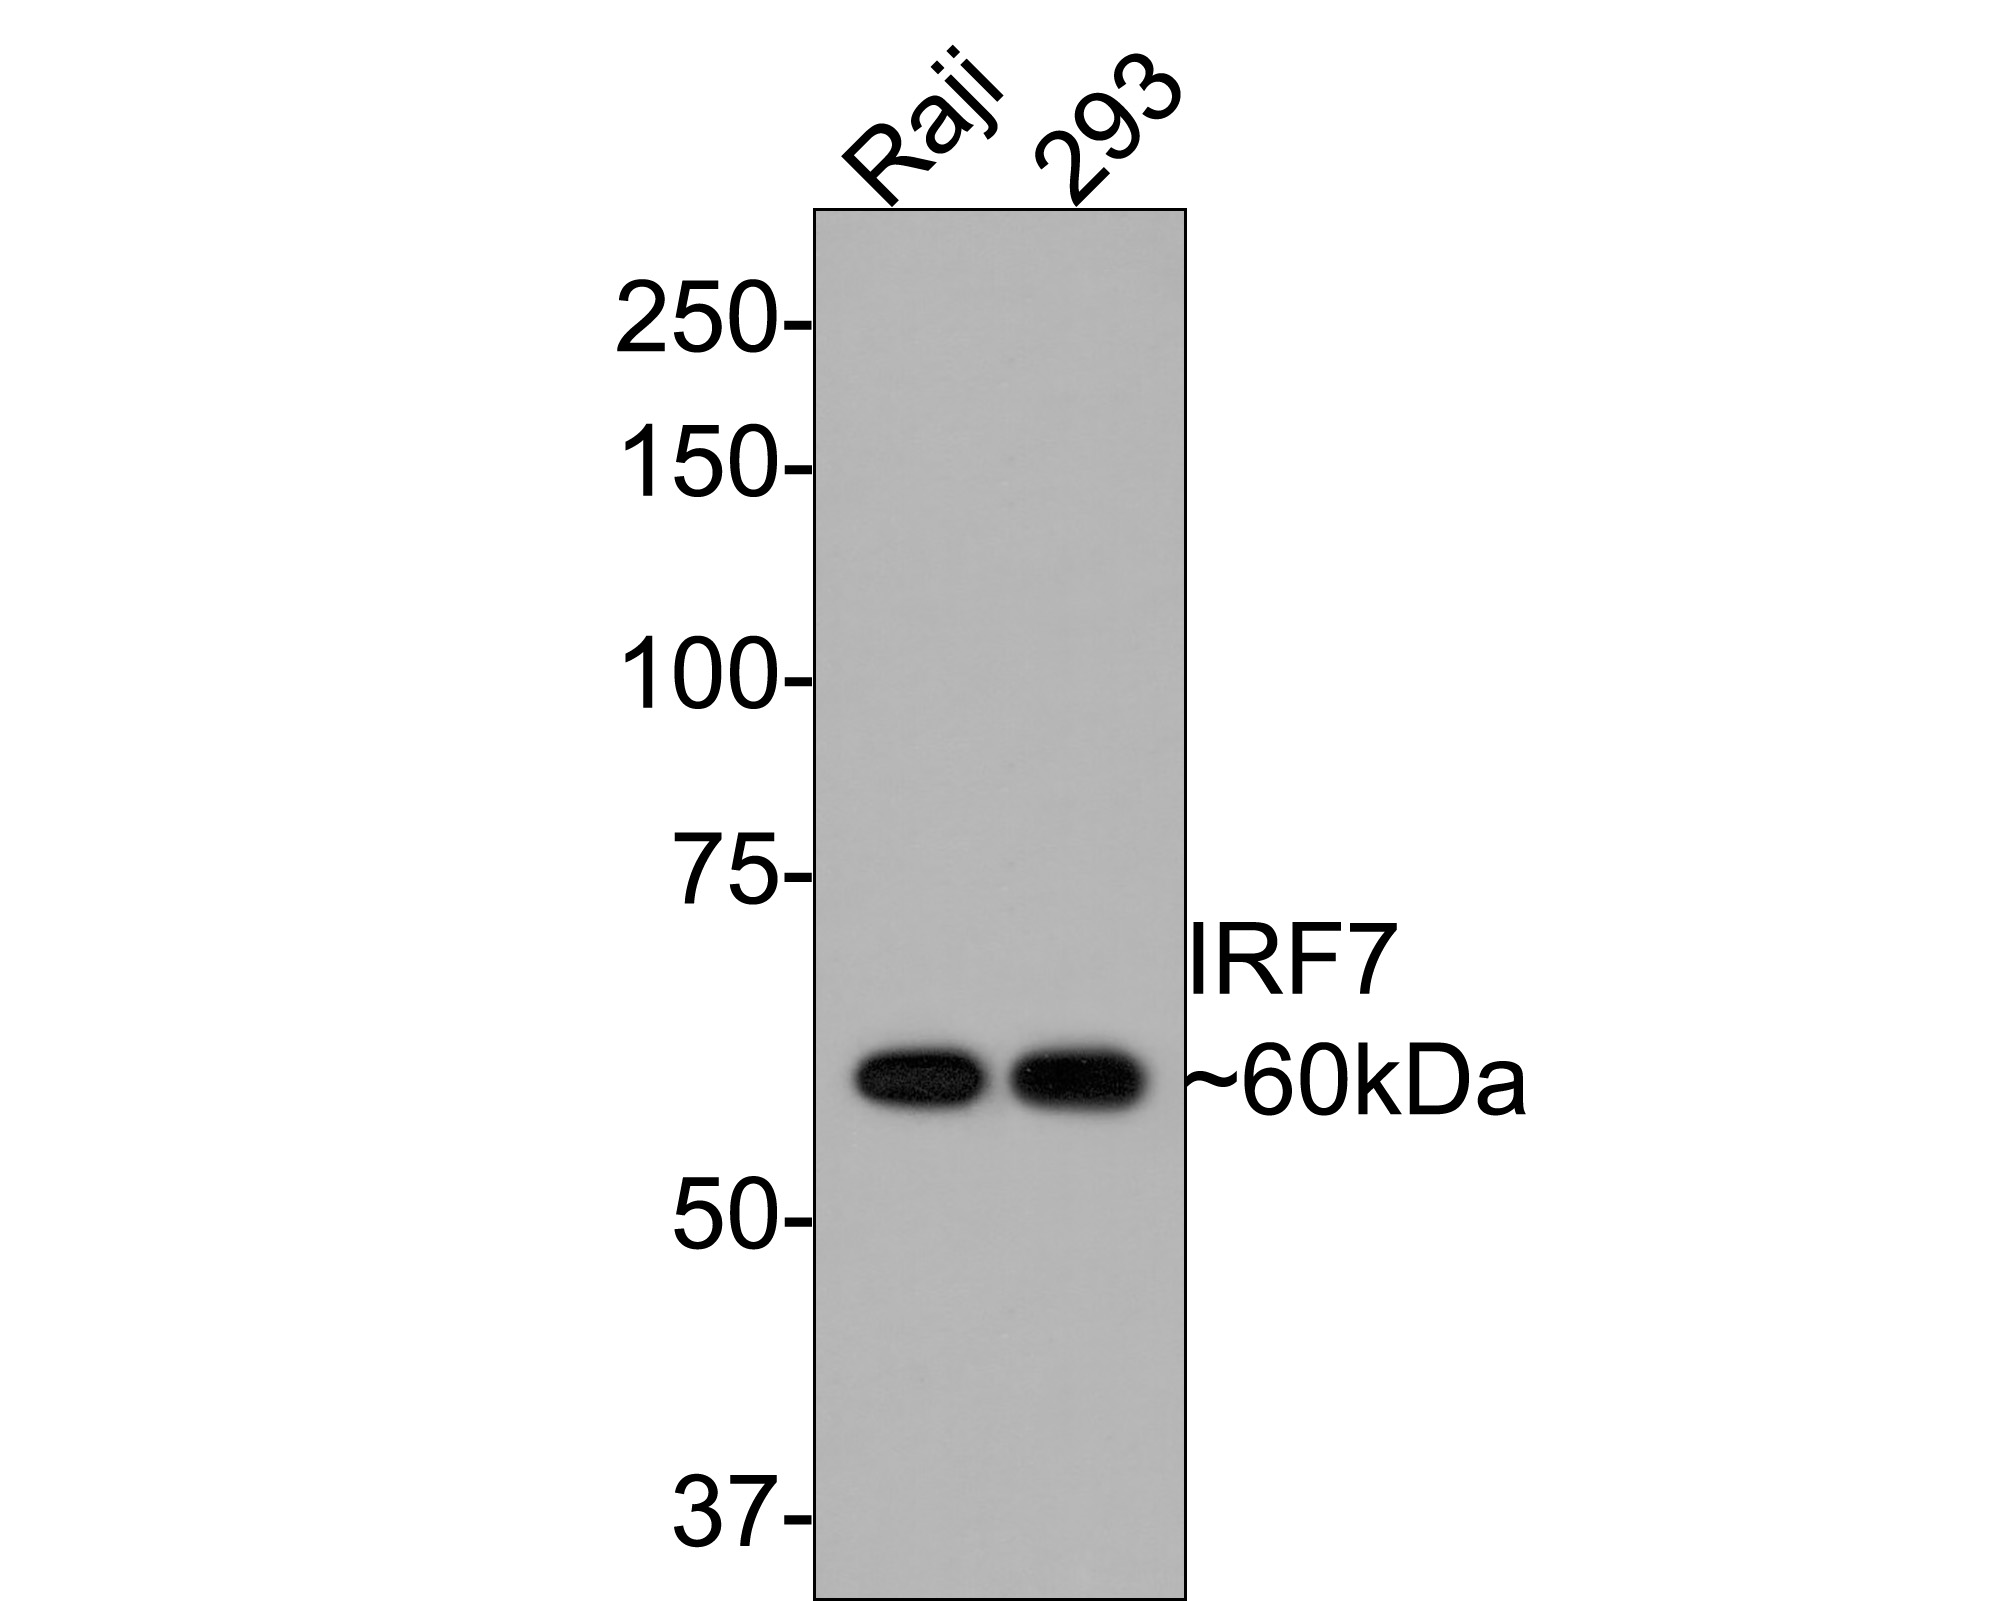 Western blot analysis of IRF7 on different lysates. Proteins were transferred to a PVDF membrane and blocked with 5% BSA in PBS for 1 hour at room temperature. The primary antibody (ET1610-89, 1/500) was used in 5% BSA at room temperature for 2 hours. Goat Anti-Rabbit IgG - HRP Secondary Antibody (HA1001) at 1:5,000 dilution was used for 1 hour at room temperature.<br />  Positive control: <br />  Lane 1: Jurkat cell lysate<br />  Lane 2: Raji cell lysate<br />  Lane 2: 293 cell lysate